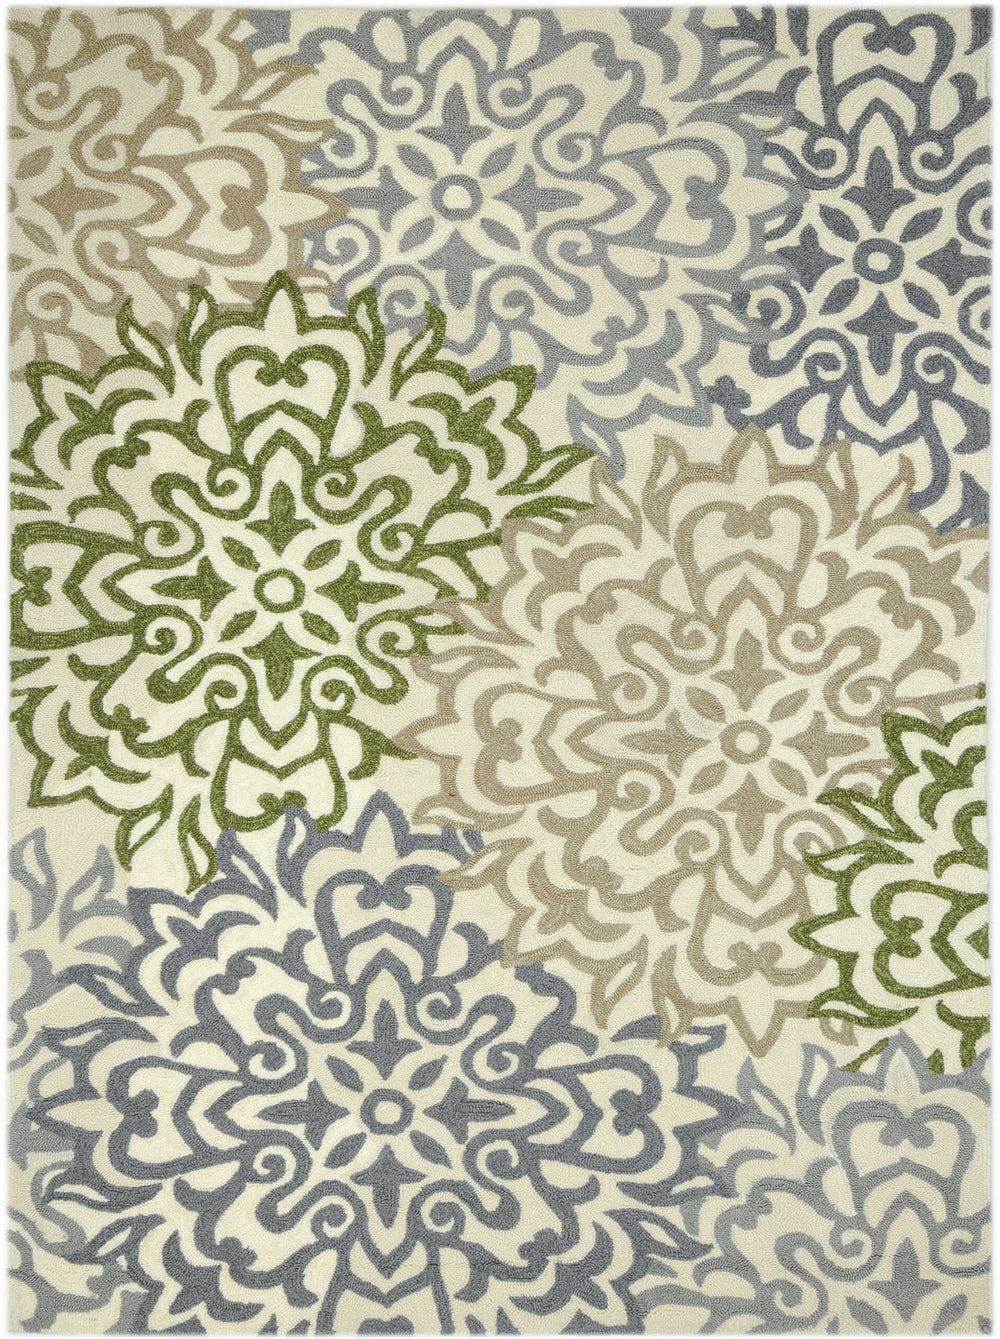 Amer Rugs Piazza PAZ-23 Area Rug